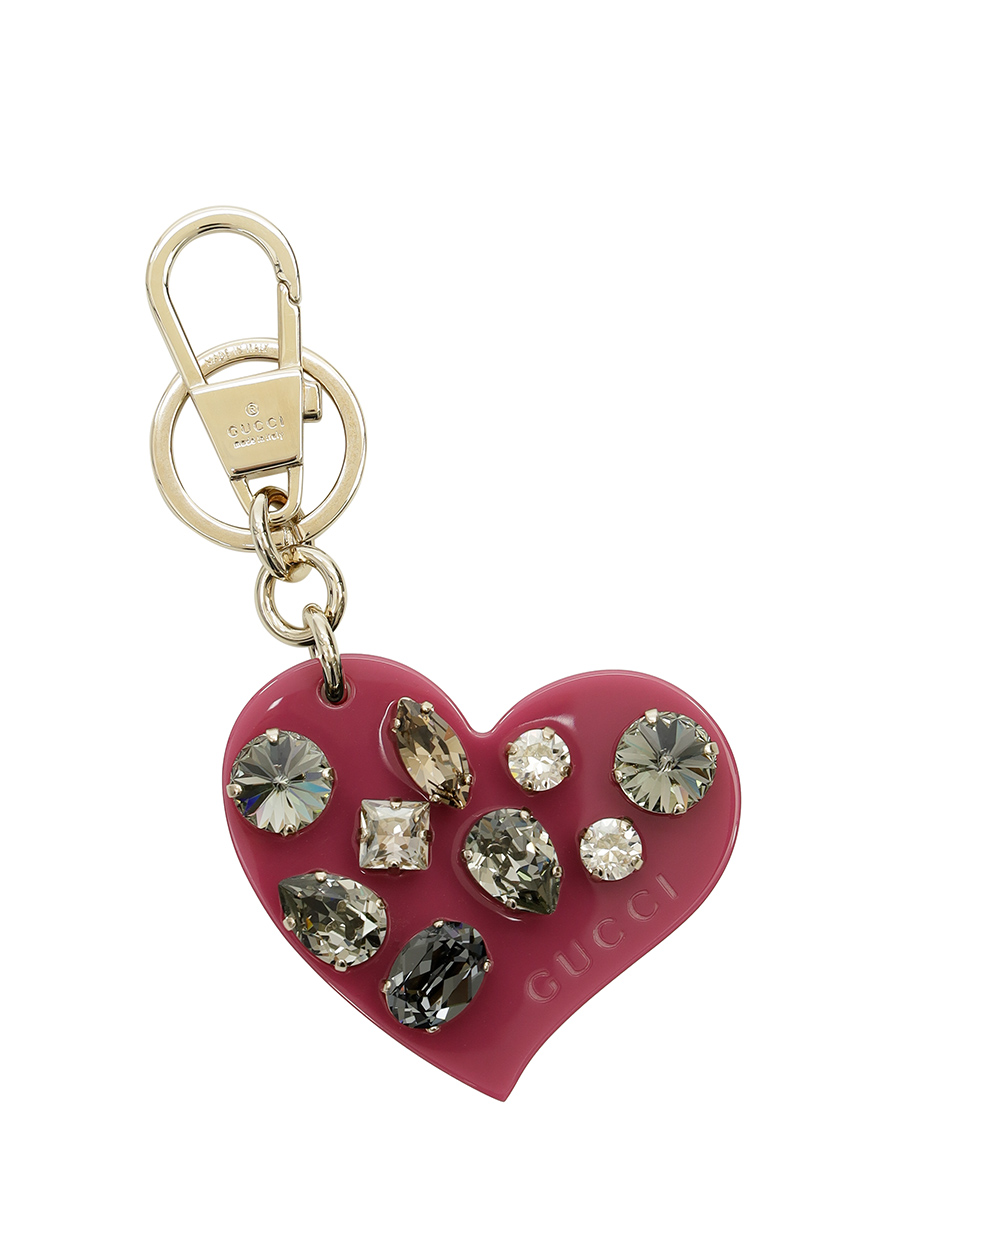 Heart Shaped Crystal Keychain